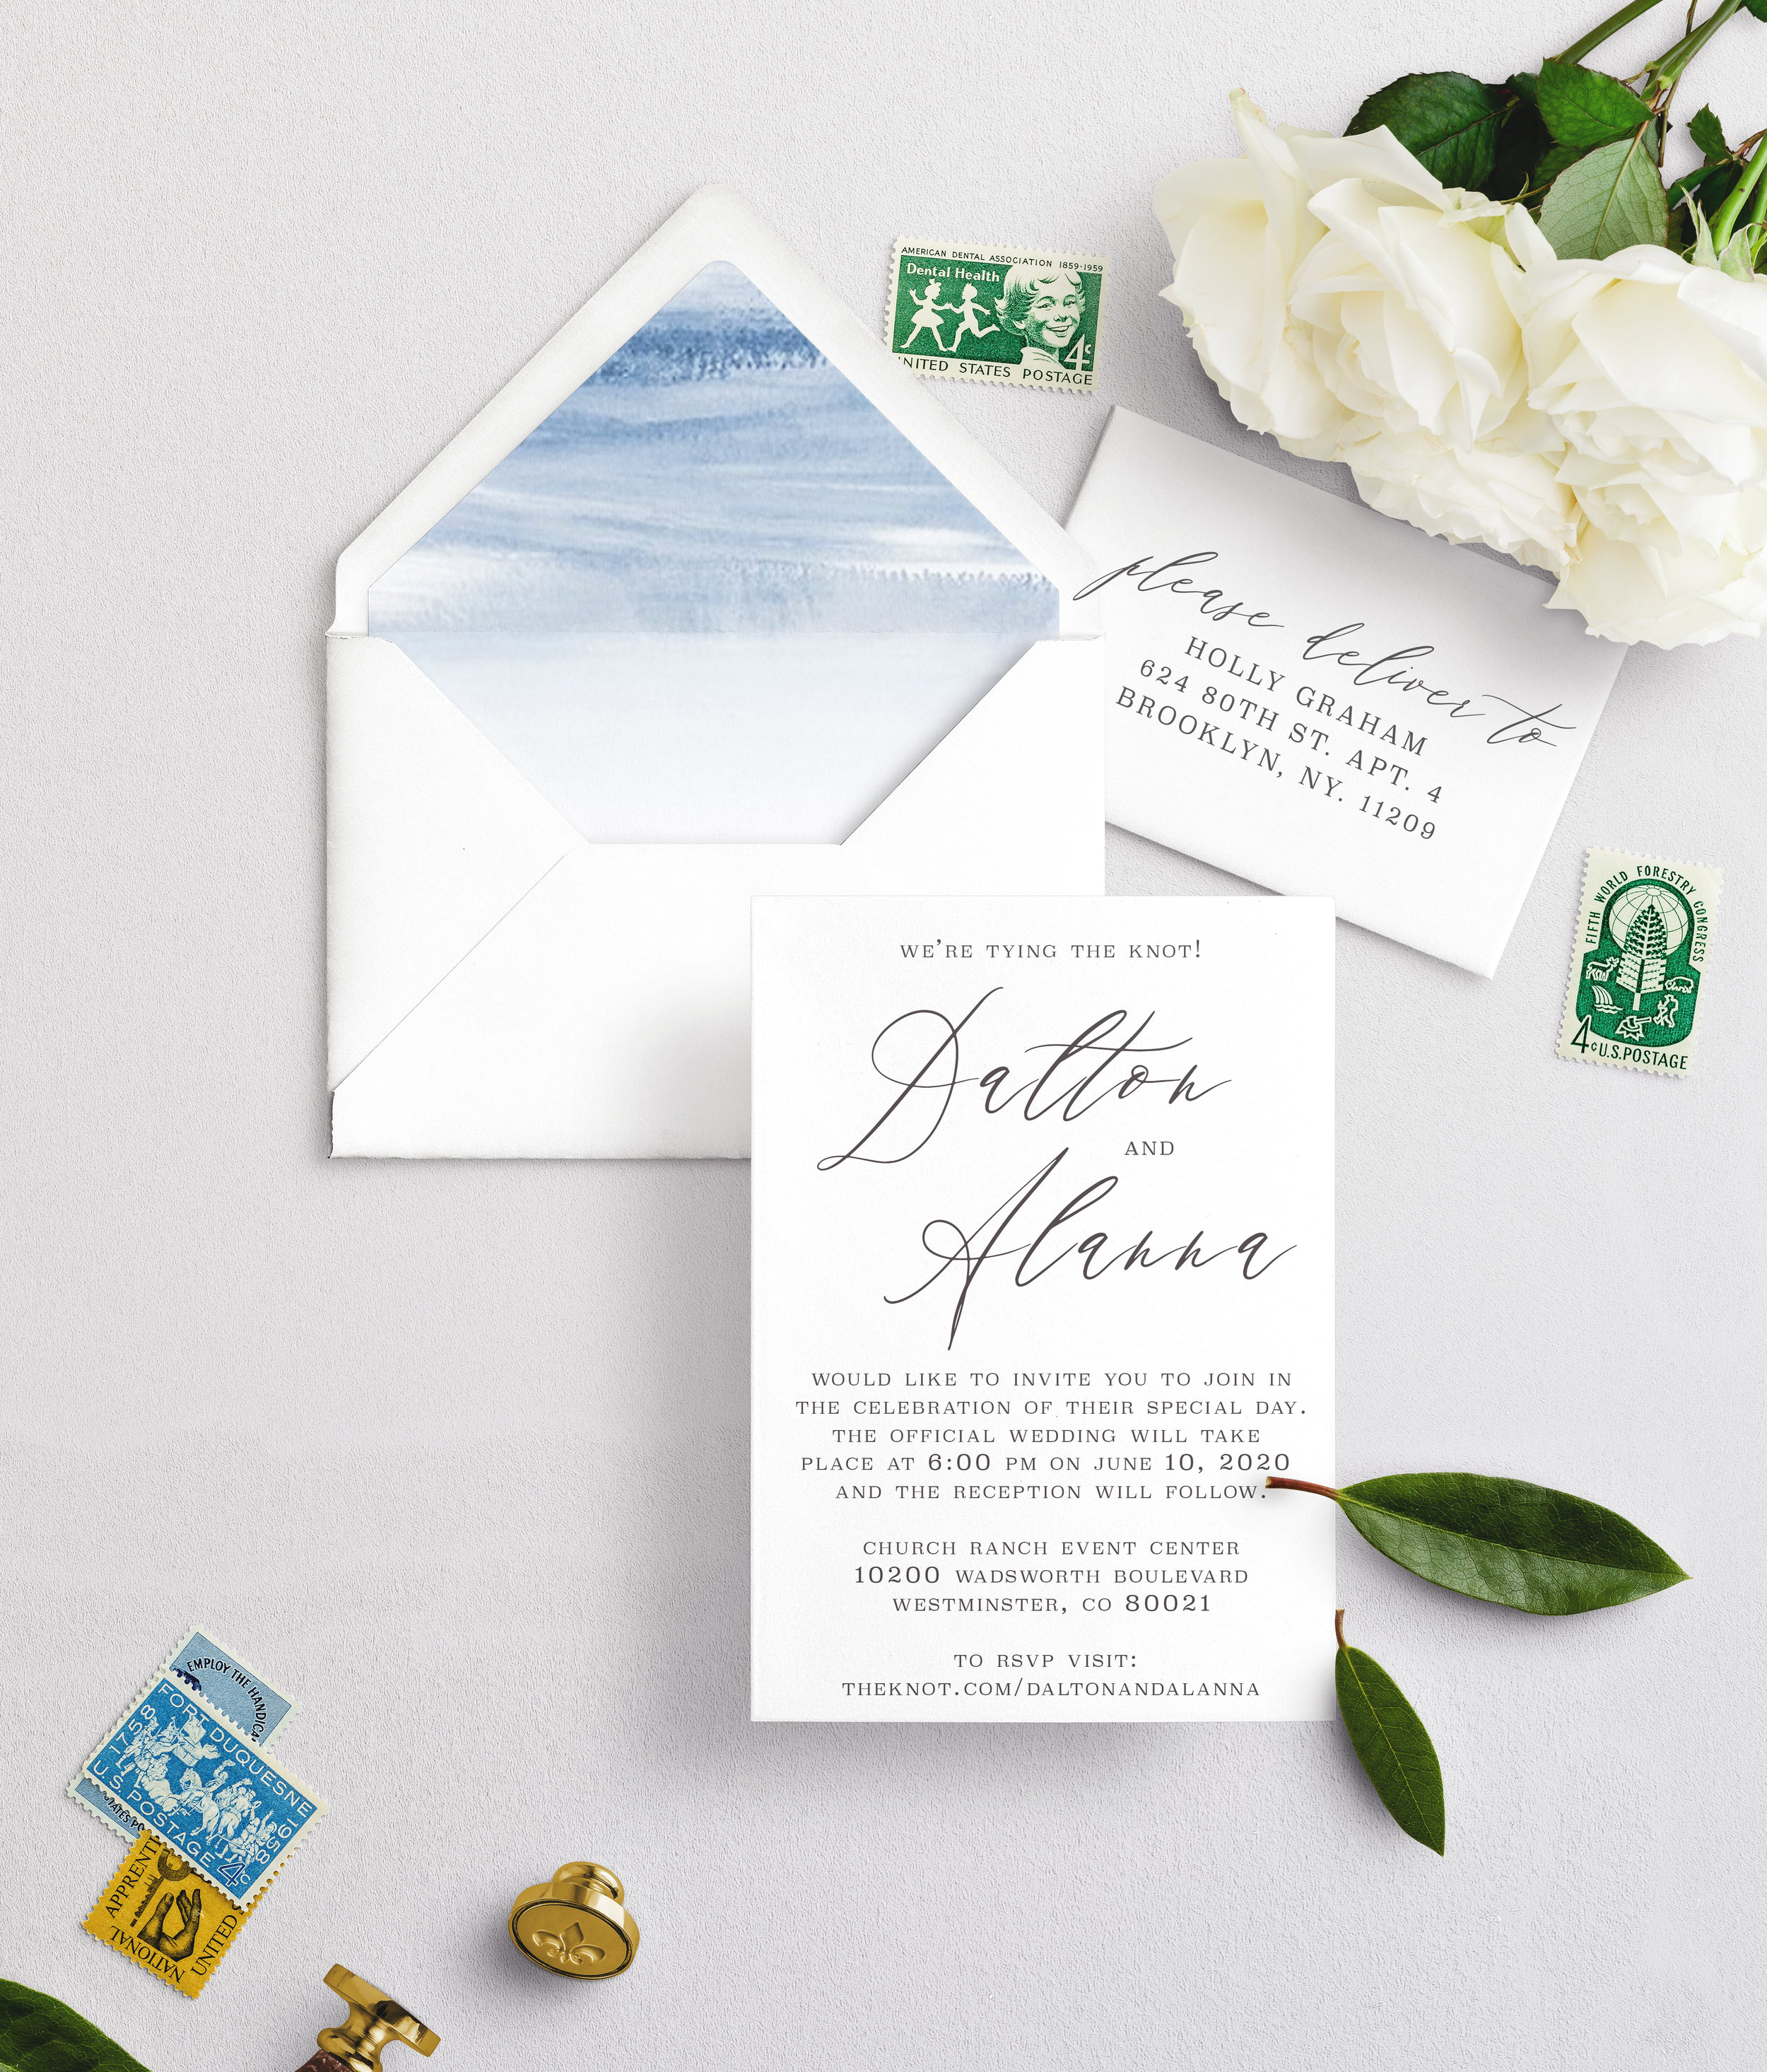 Invitation Decision:  Cottonwood Suite + specific redesign need   Envelope Color?:  white   Quantity:  100 included   Wording:  Keep the wording as is, just include our personal wedding details.   I want more!:  Yes, I'd still like to meet in person to discuss available upgrades.   Shipping Address/ Return Address:  2928 Penstemon Way Castle Rock CO 80109